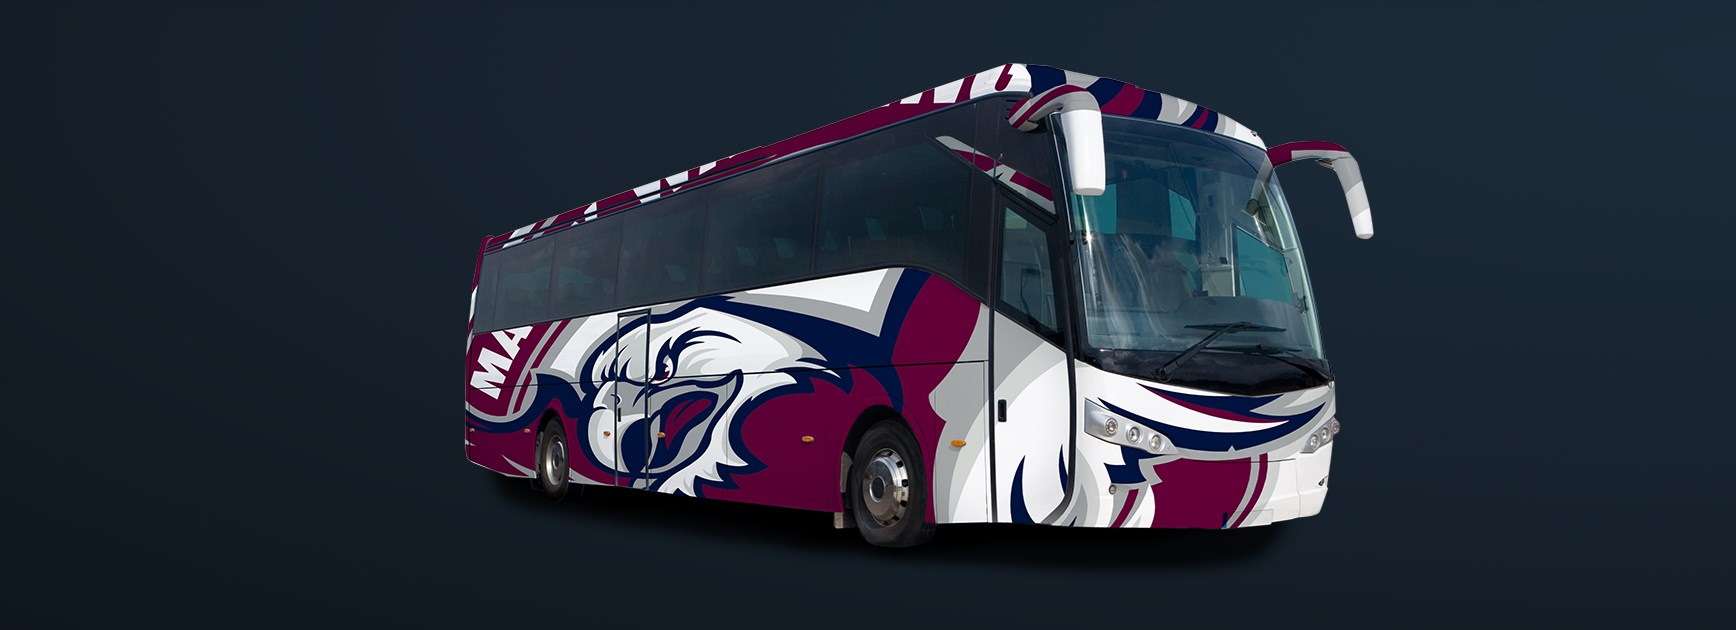 Supporter buses to ANZ Stadium